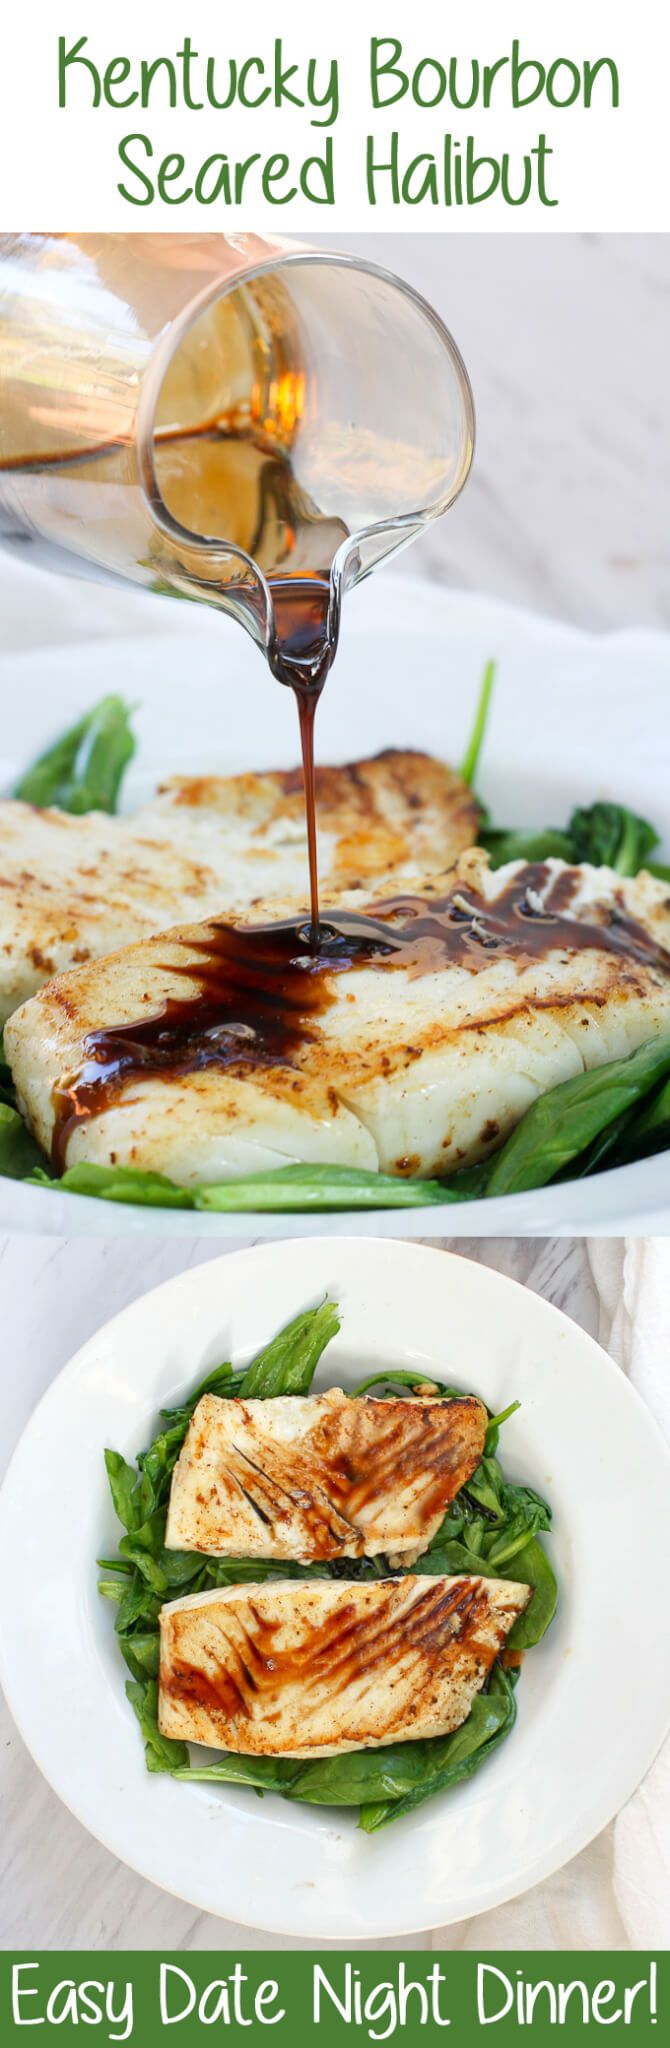 #ad This Kentucky Bourbon Seared Halibut is Date Night at its best! It features delicious, meaty halibut drizzled with a quick bourbon sauce, served over a bed of wilted spinach. #DateNight #Seafood #Halibut #Bourbon